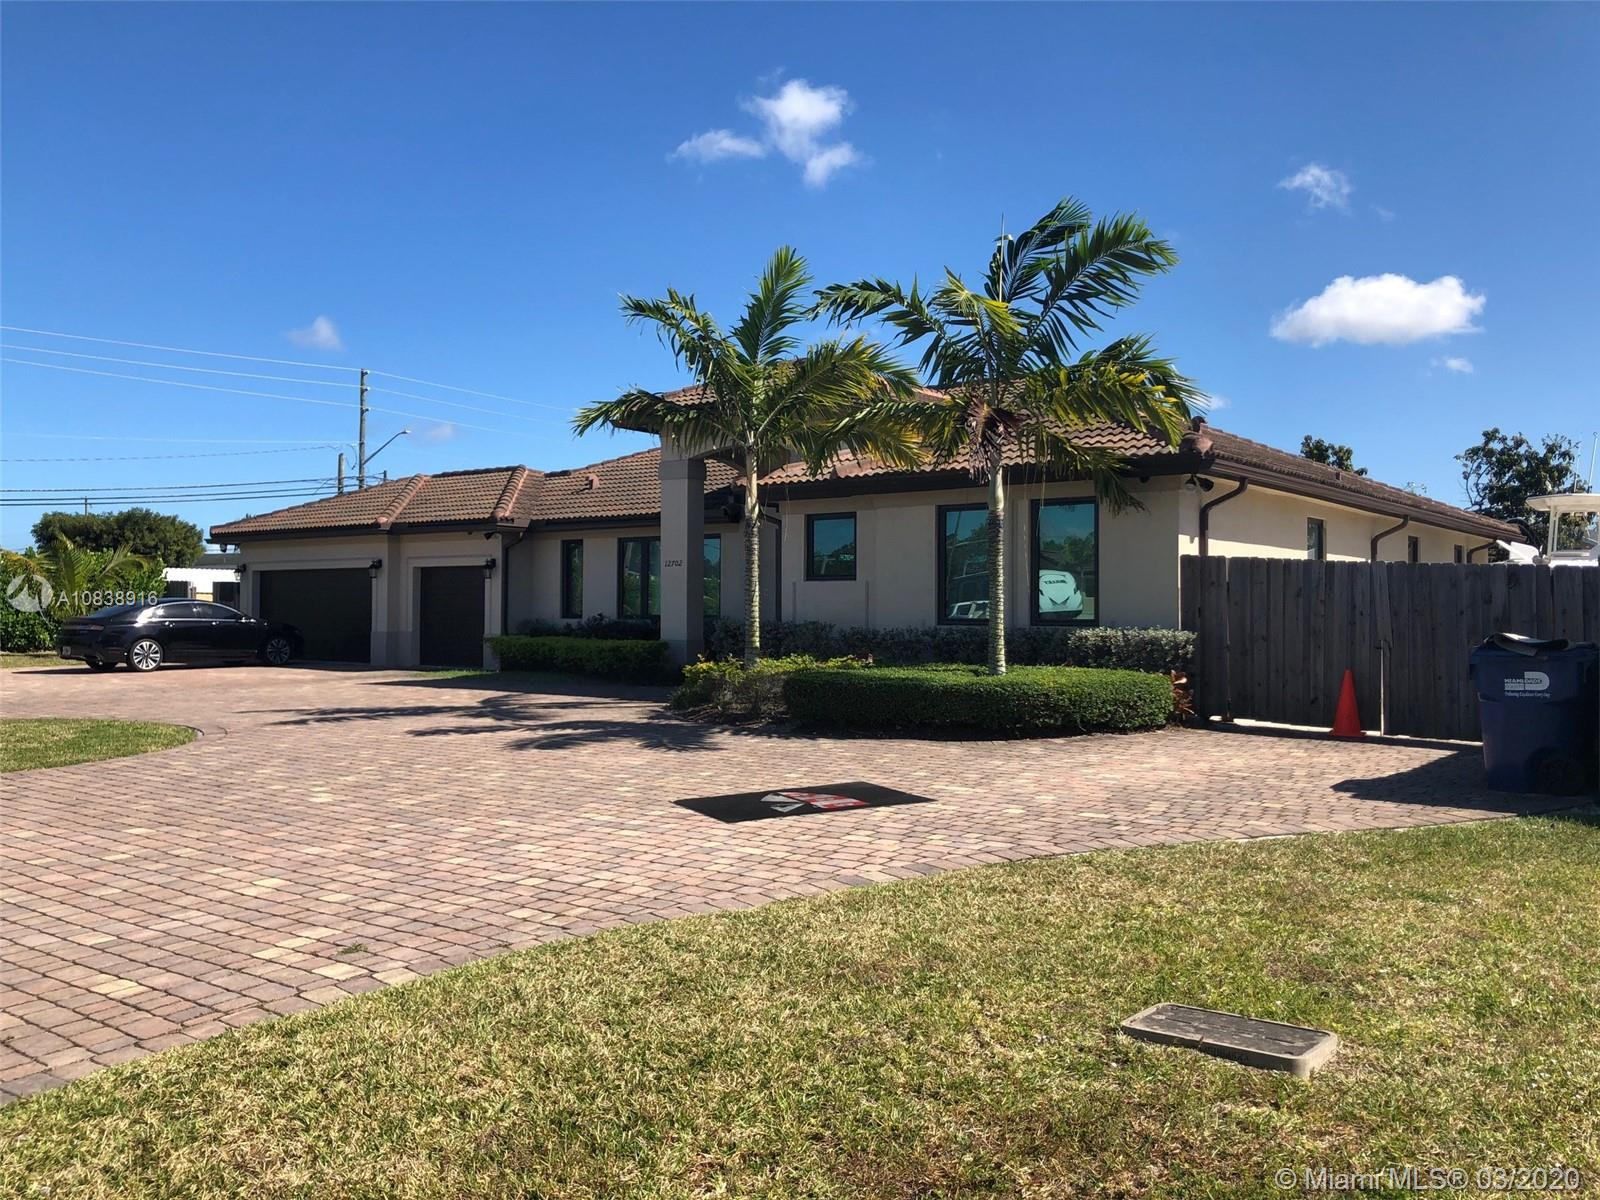 12702 SW 184 Ter, Miami, Florida 33177, 4 Bedrooms Bedrooms, ,4 BathroomsBathrooms,Residential,For Sale,12702 SW 184 Ter,A10838916